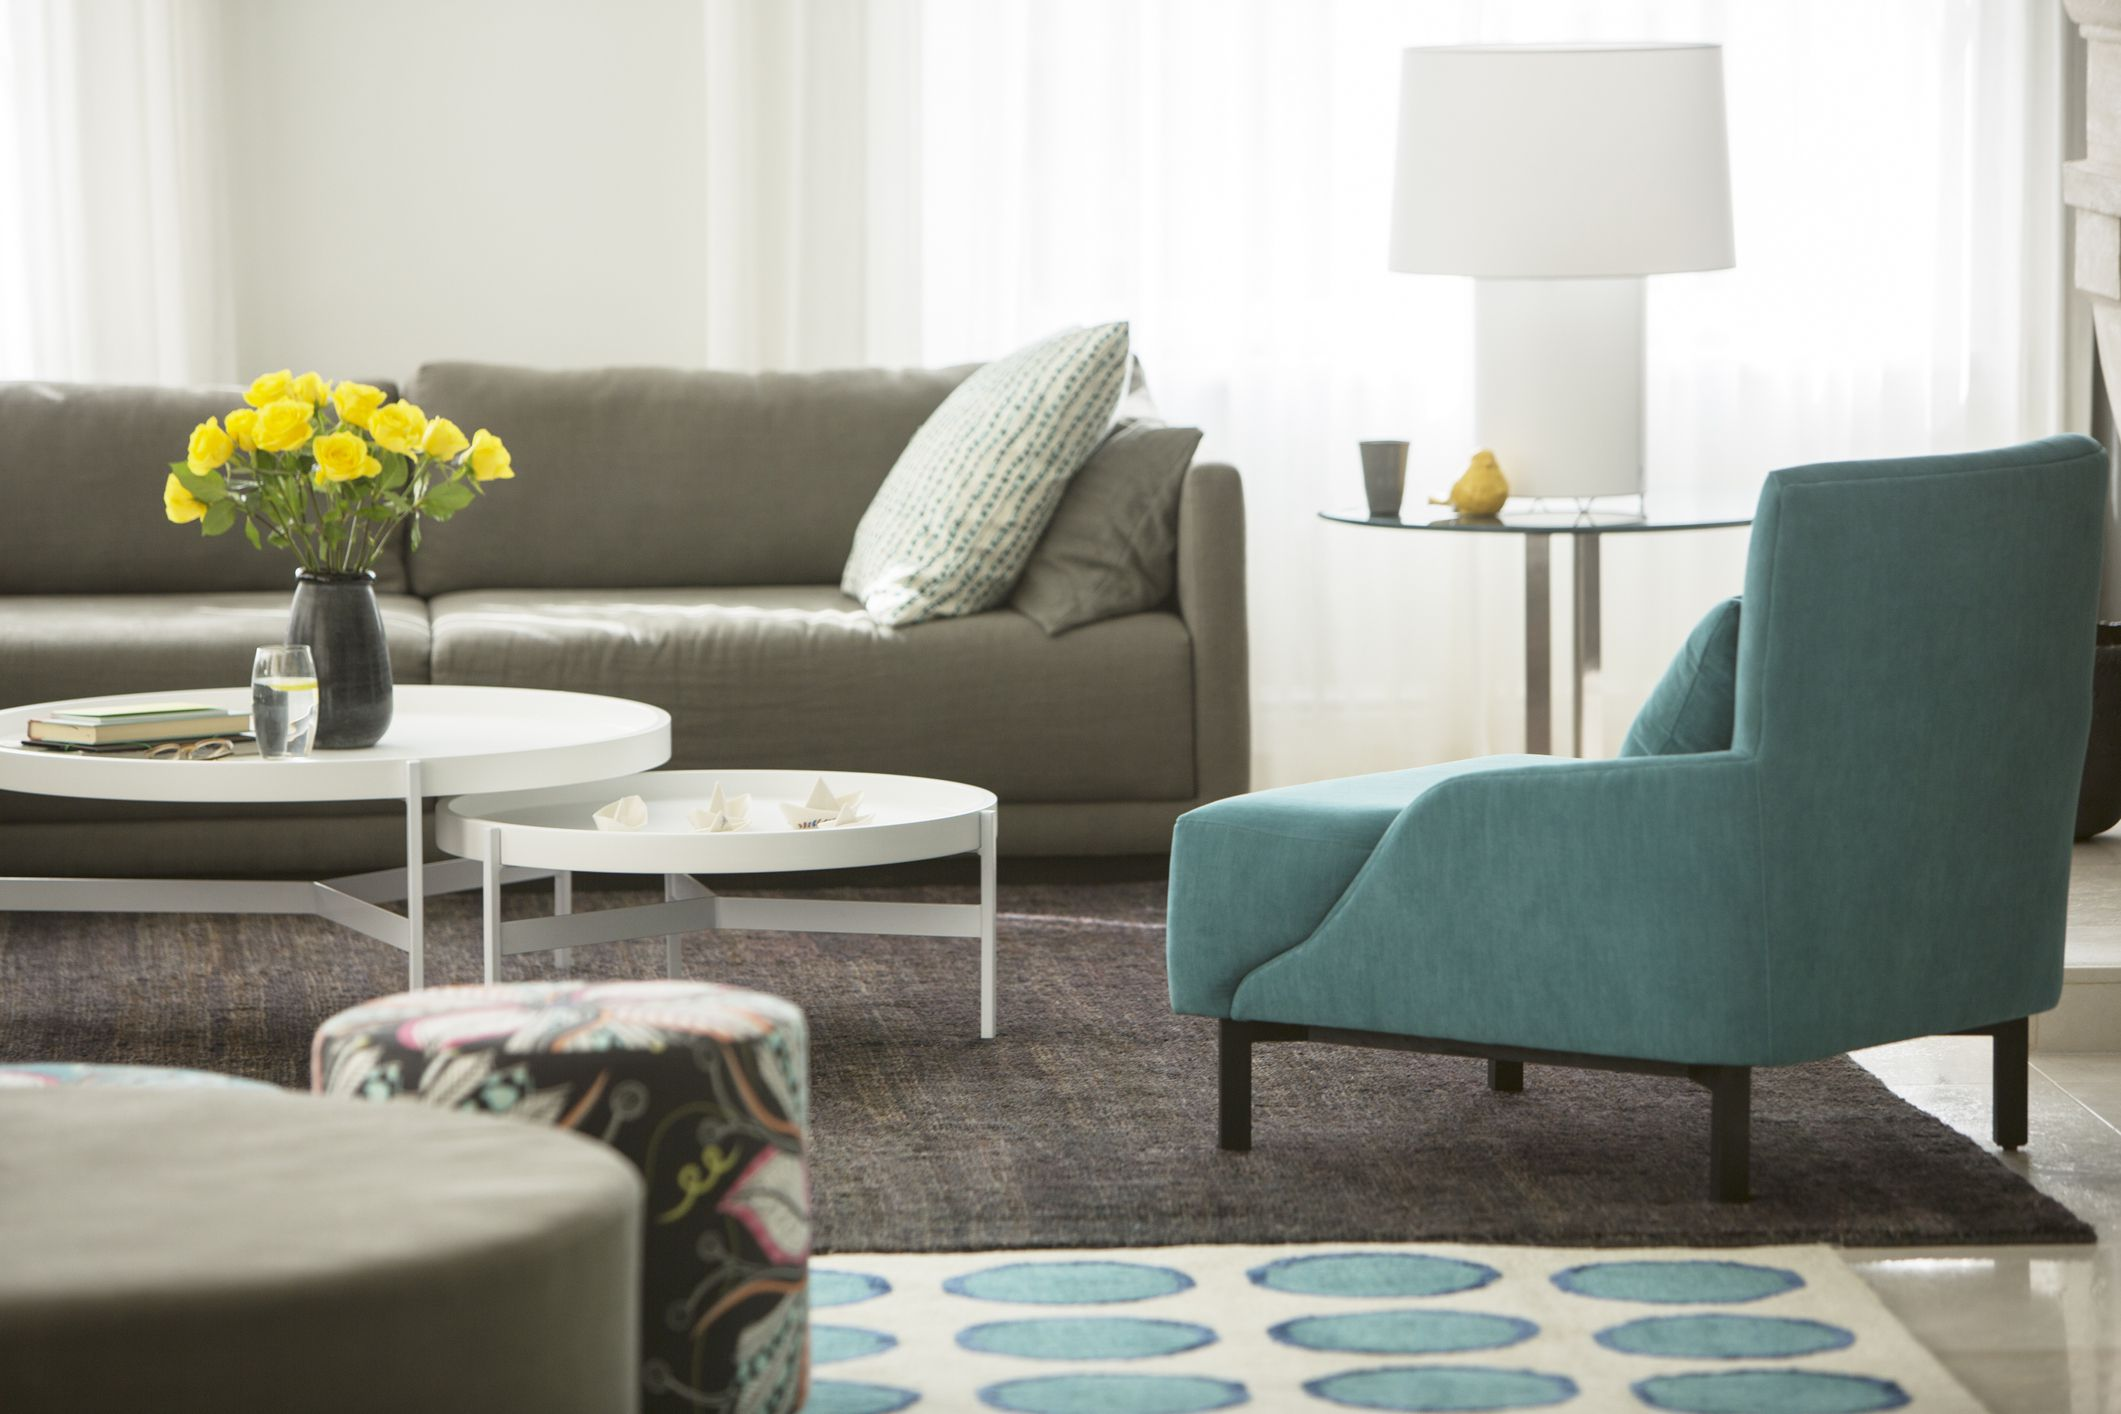 Decorating 101 interior design basics for Home decor 101